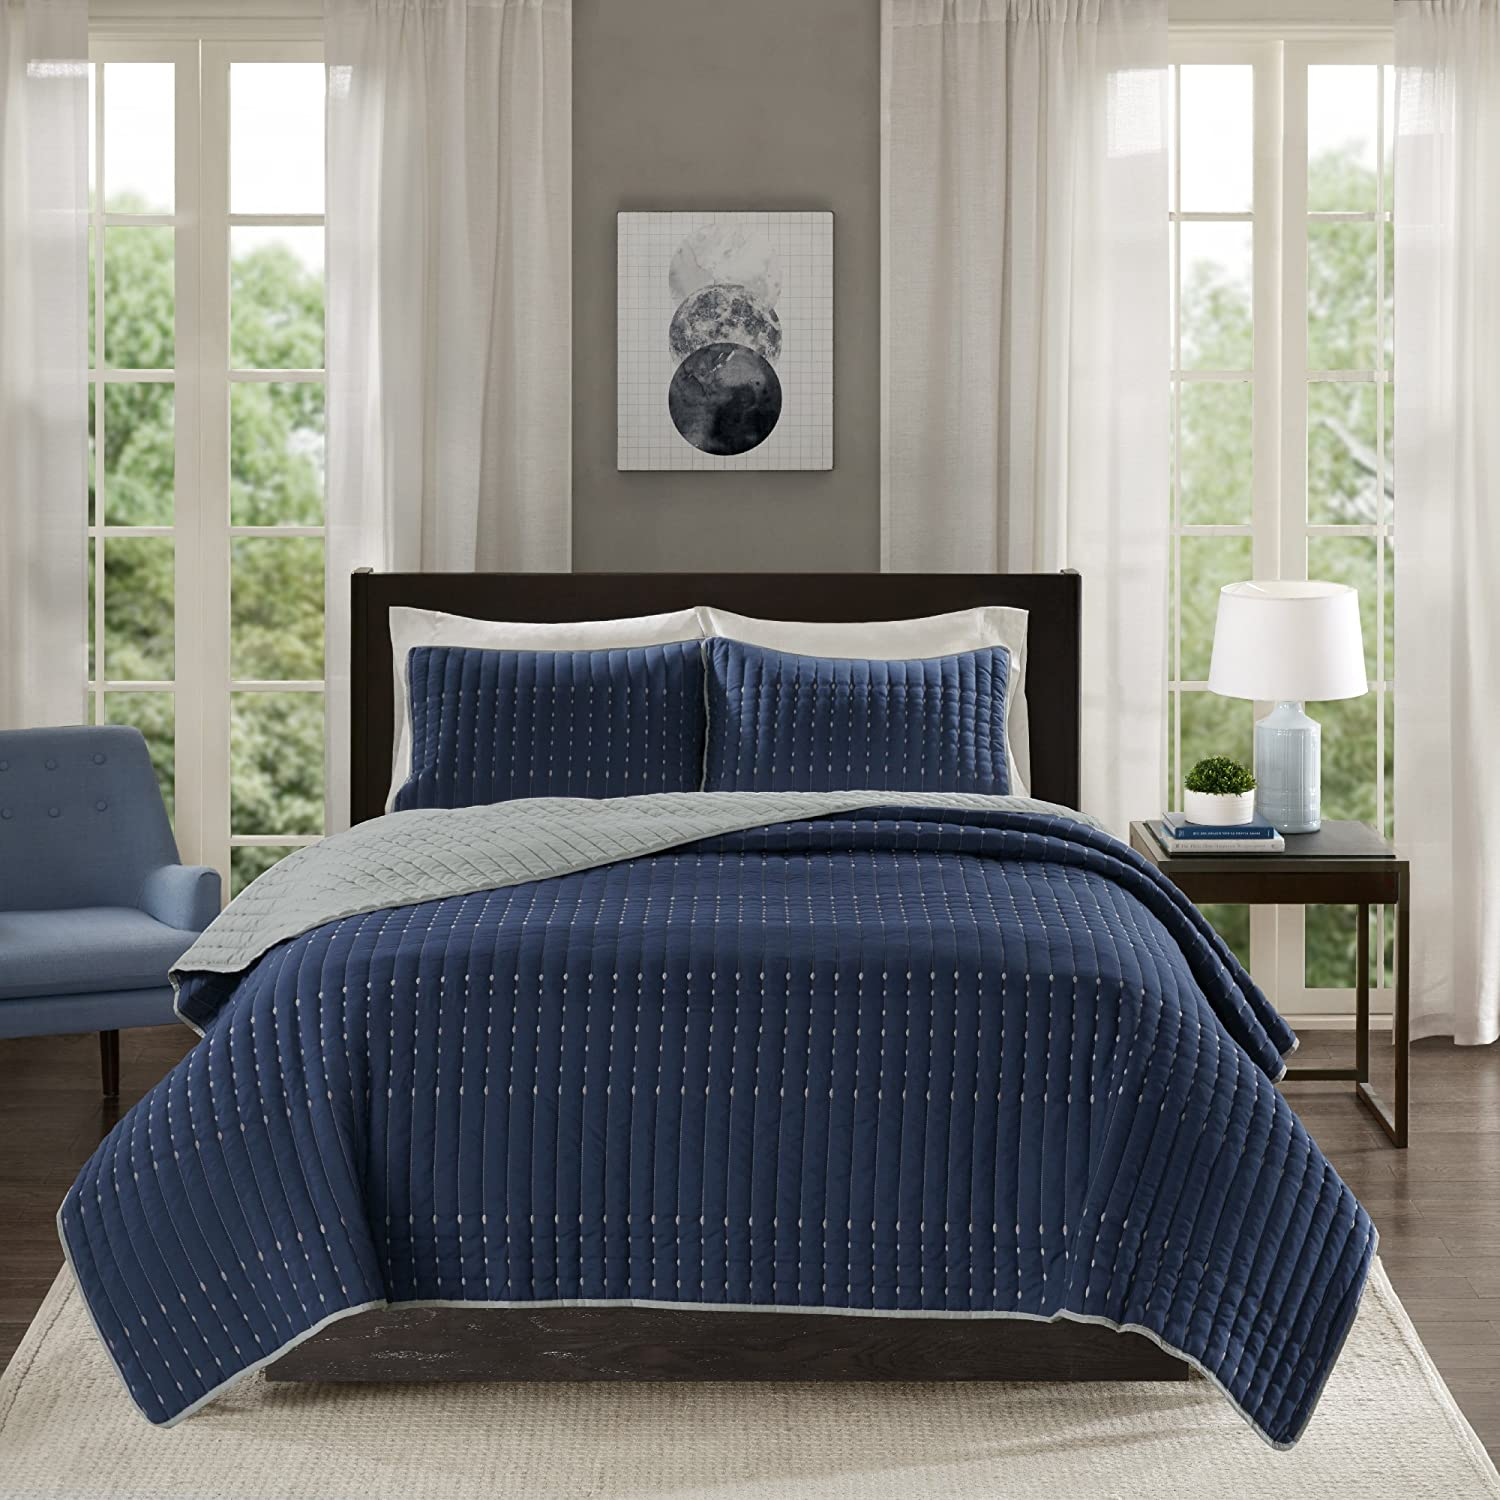 Comfort Spaces Bayley Reversible Embroidery Stitched 3 Piece Quilt Coverlet Bedspread Bedding Set, King, Navy